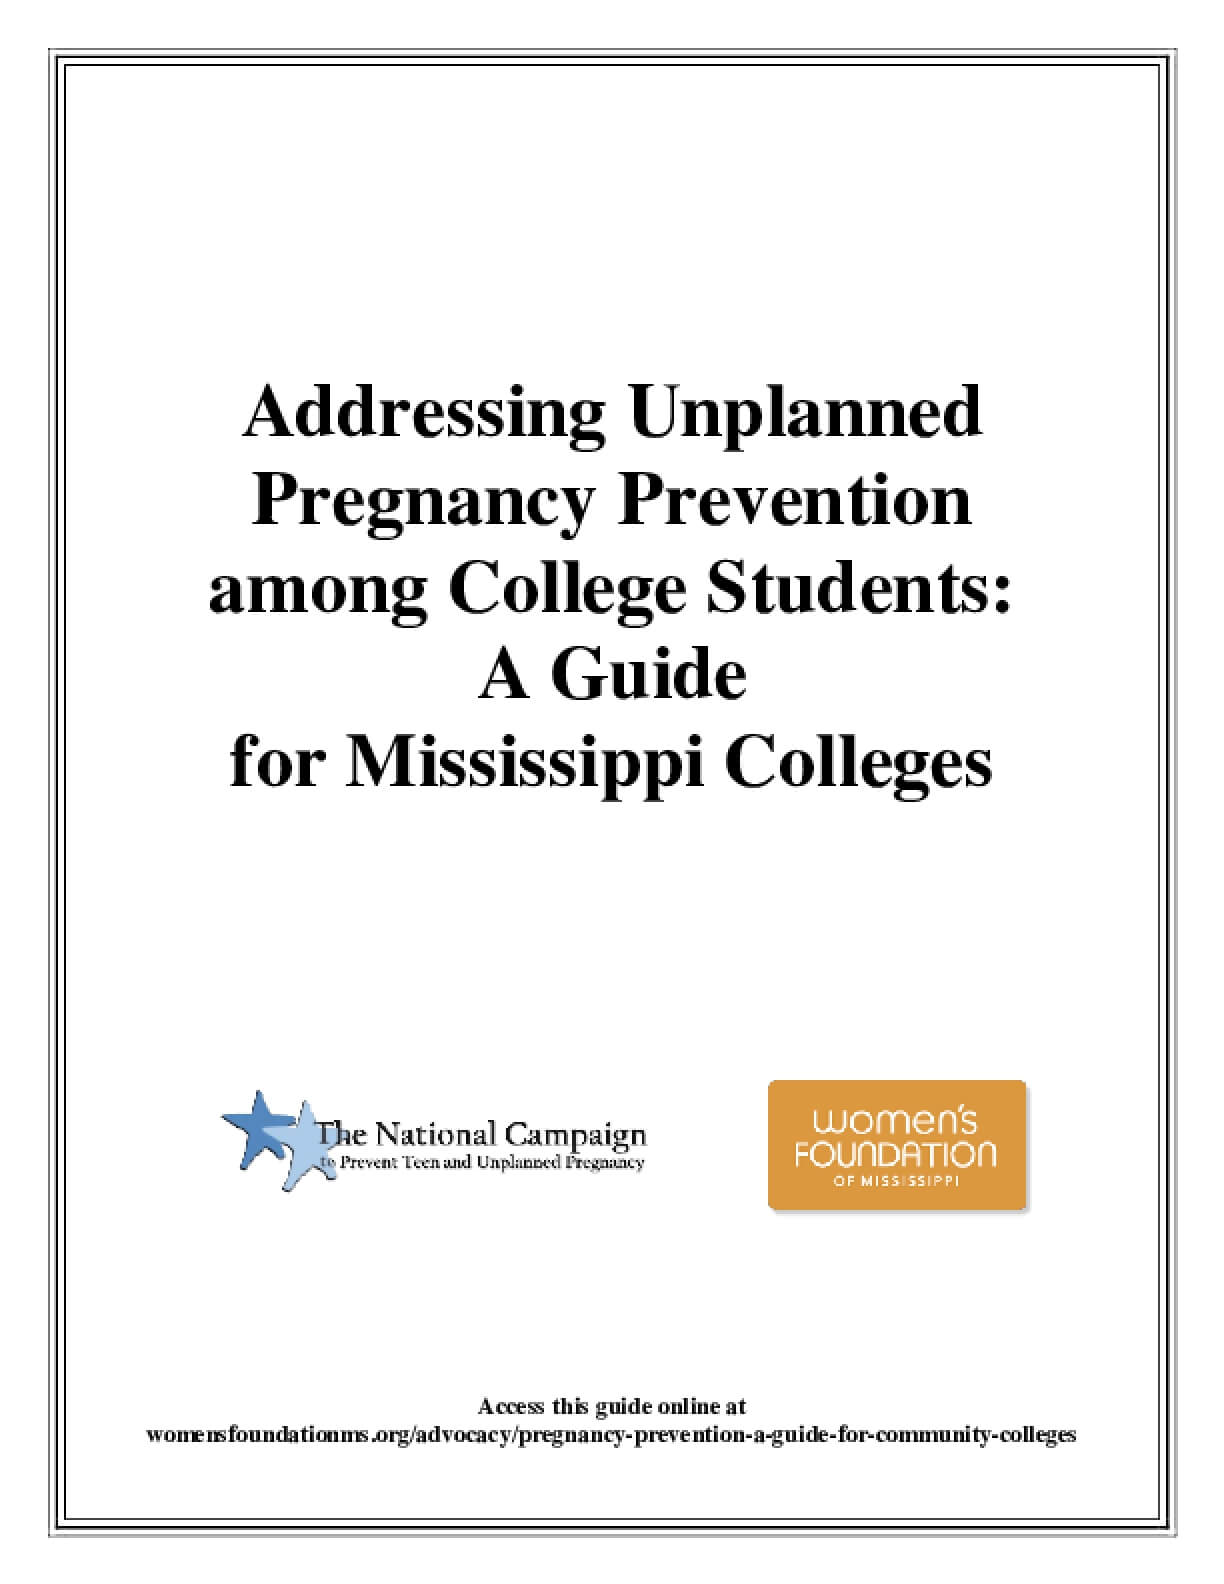 Addressing Unplanned Pregnancy Prevention among College Students: A Guide for Mississippi Colleges